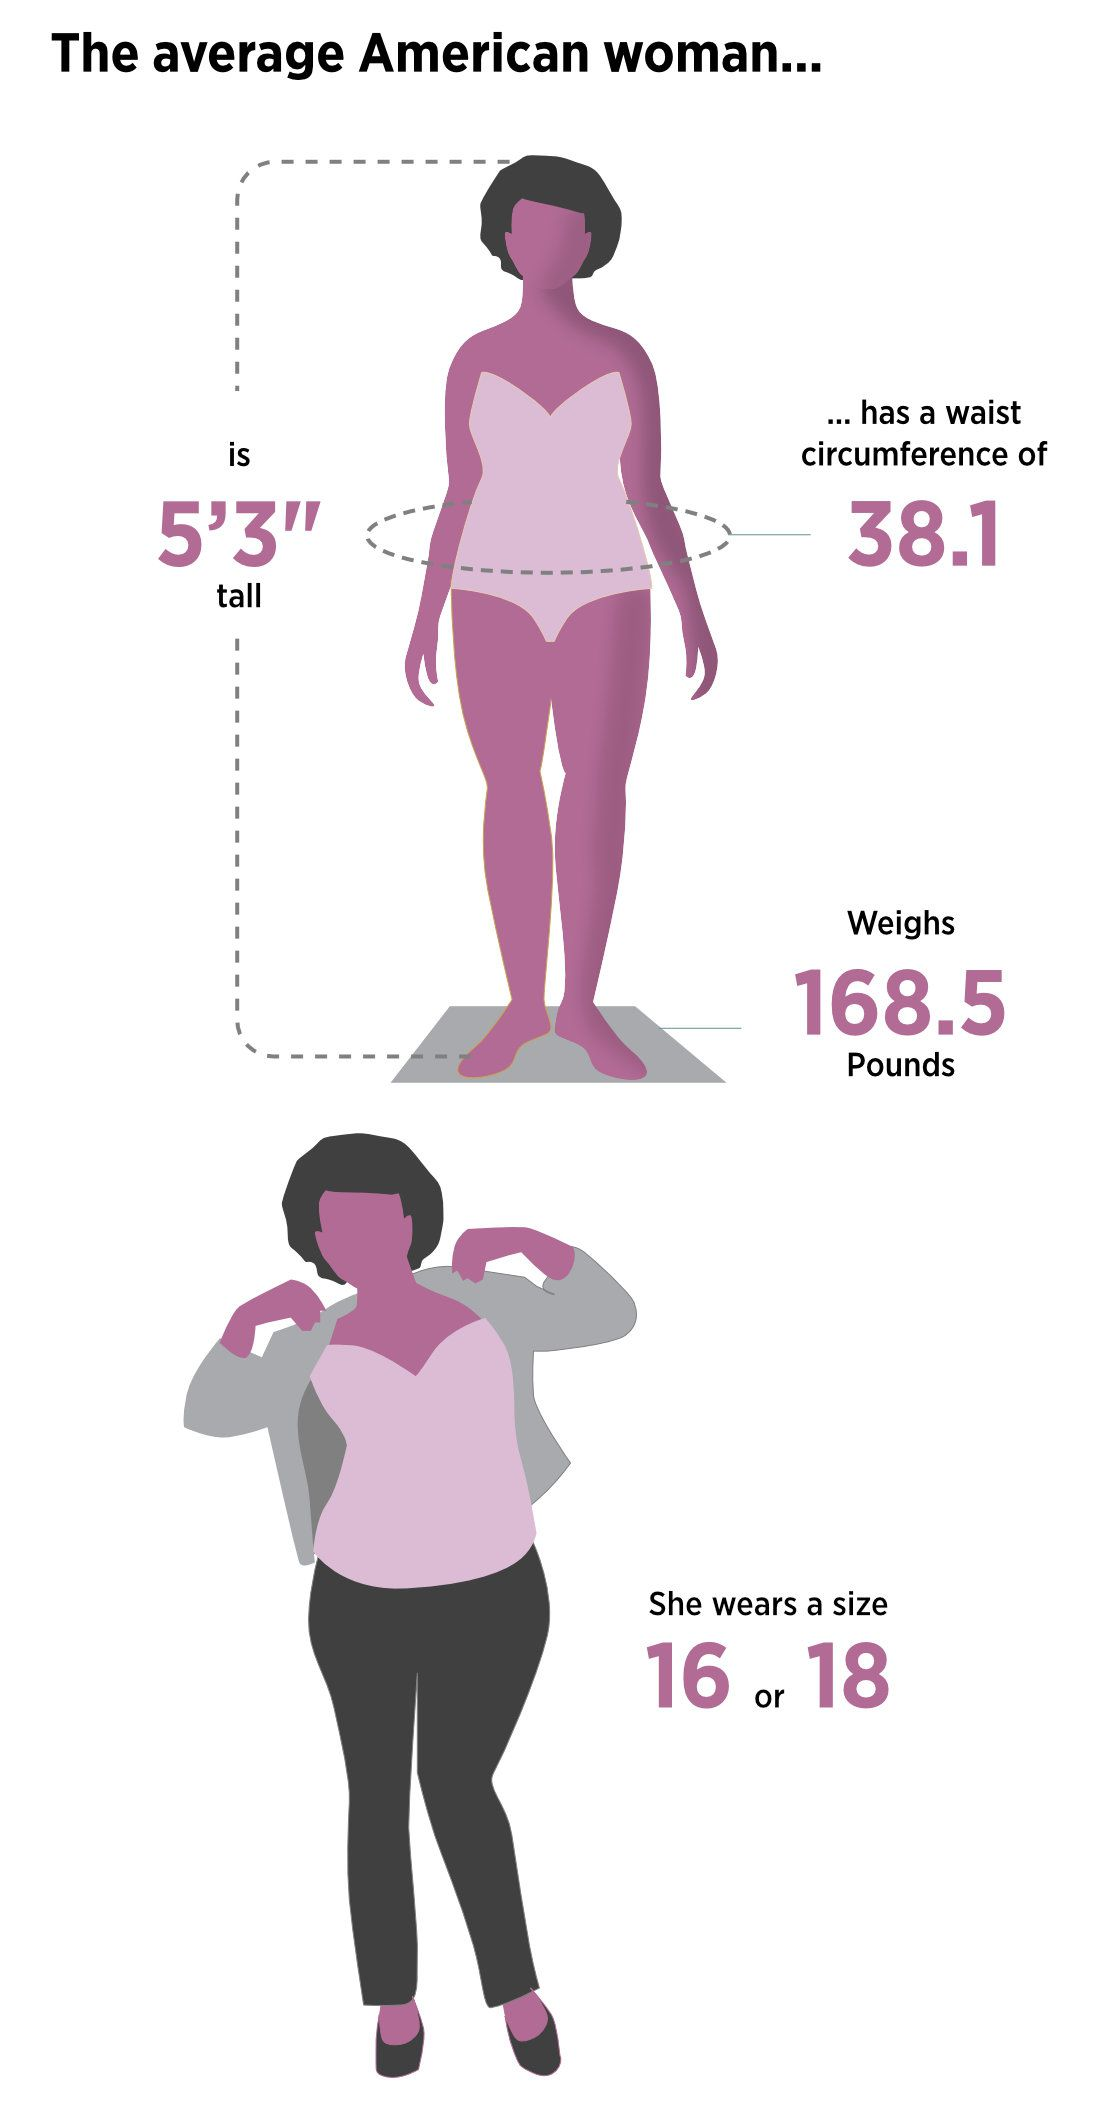 873defd0168e Plunkett Research estimates that 68 percent of American women wear a size  14 or above, up slightly from the frequently cited 67 percent figure it  found in ...